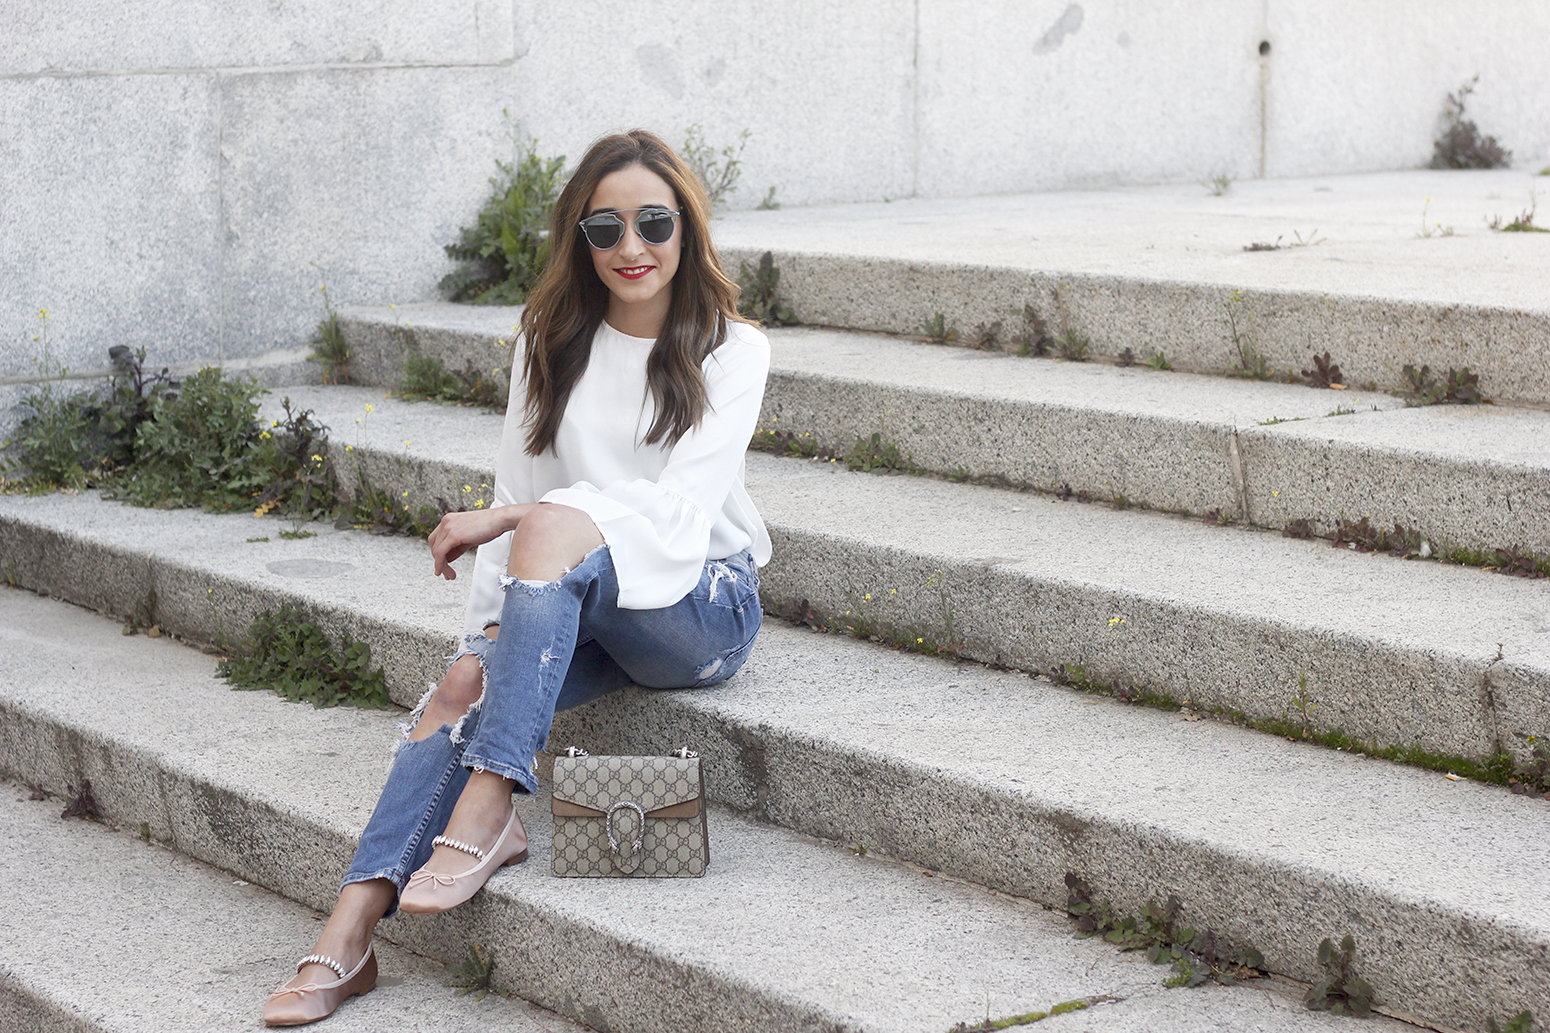 ripped keans gucci bag Jewel ballerinas uterqüe white blouse outfit style fashion12